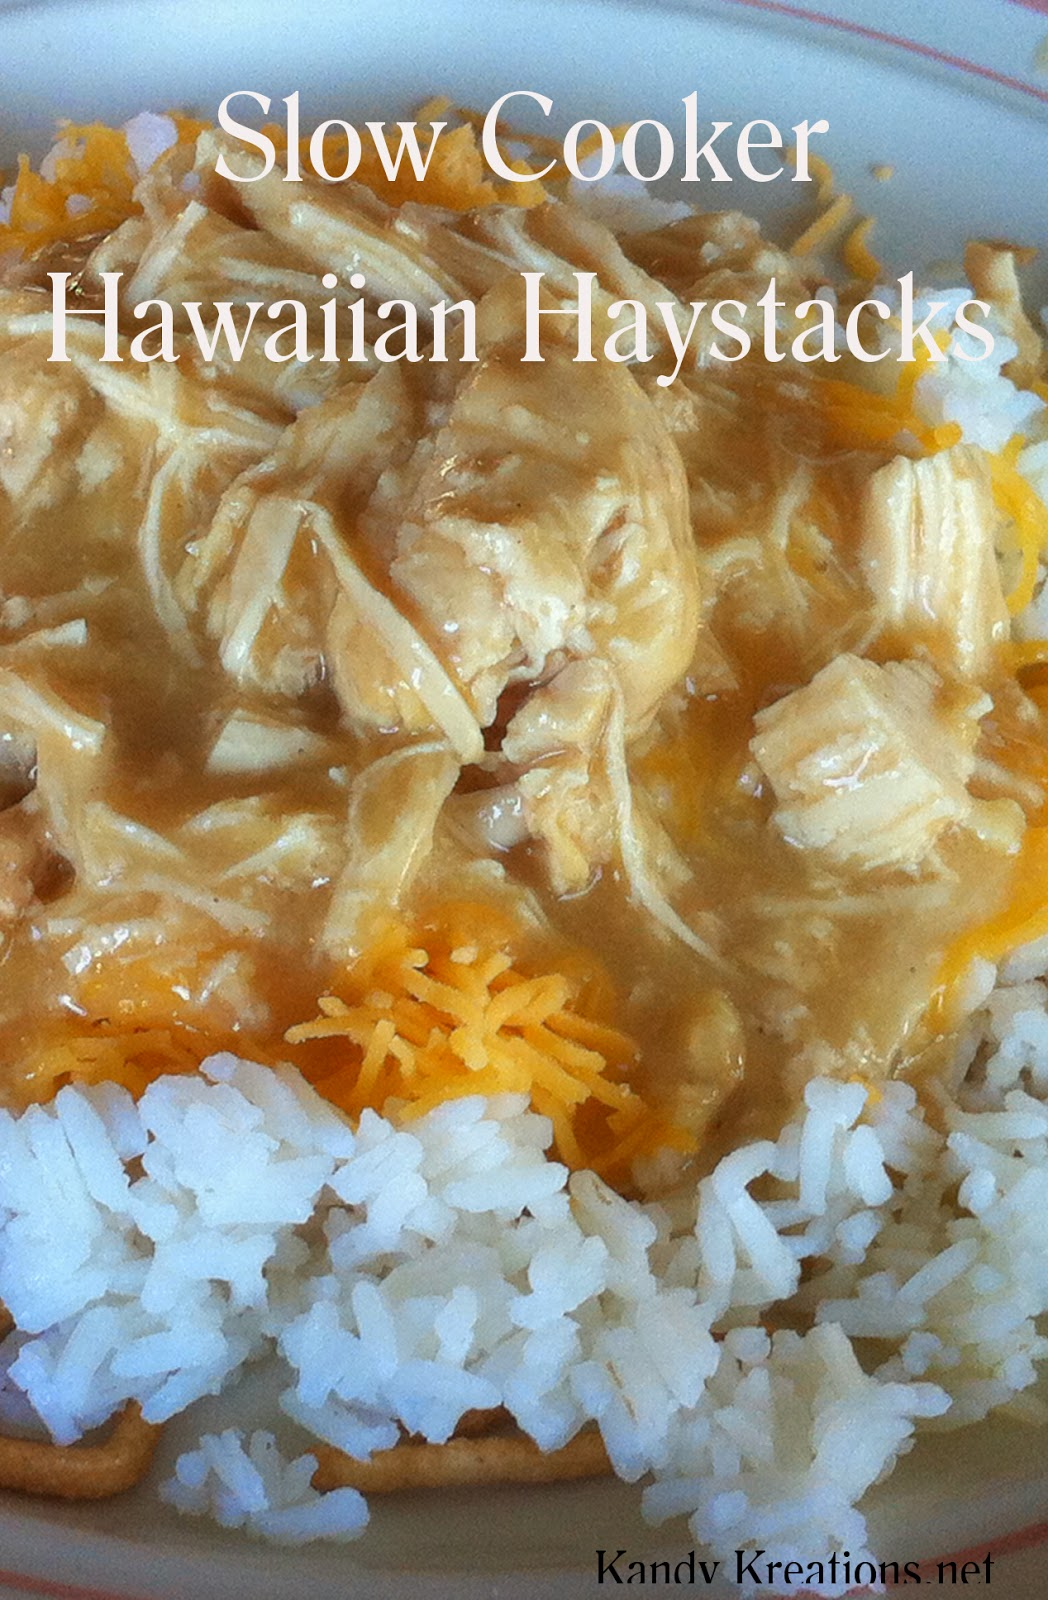 Slow Cooker Hawaiian Haystacks Recipe by Kandy Kreations